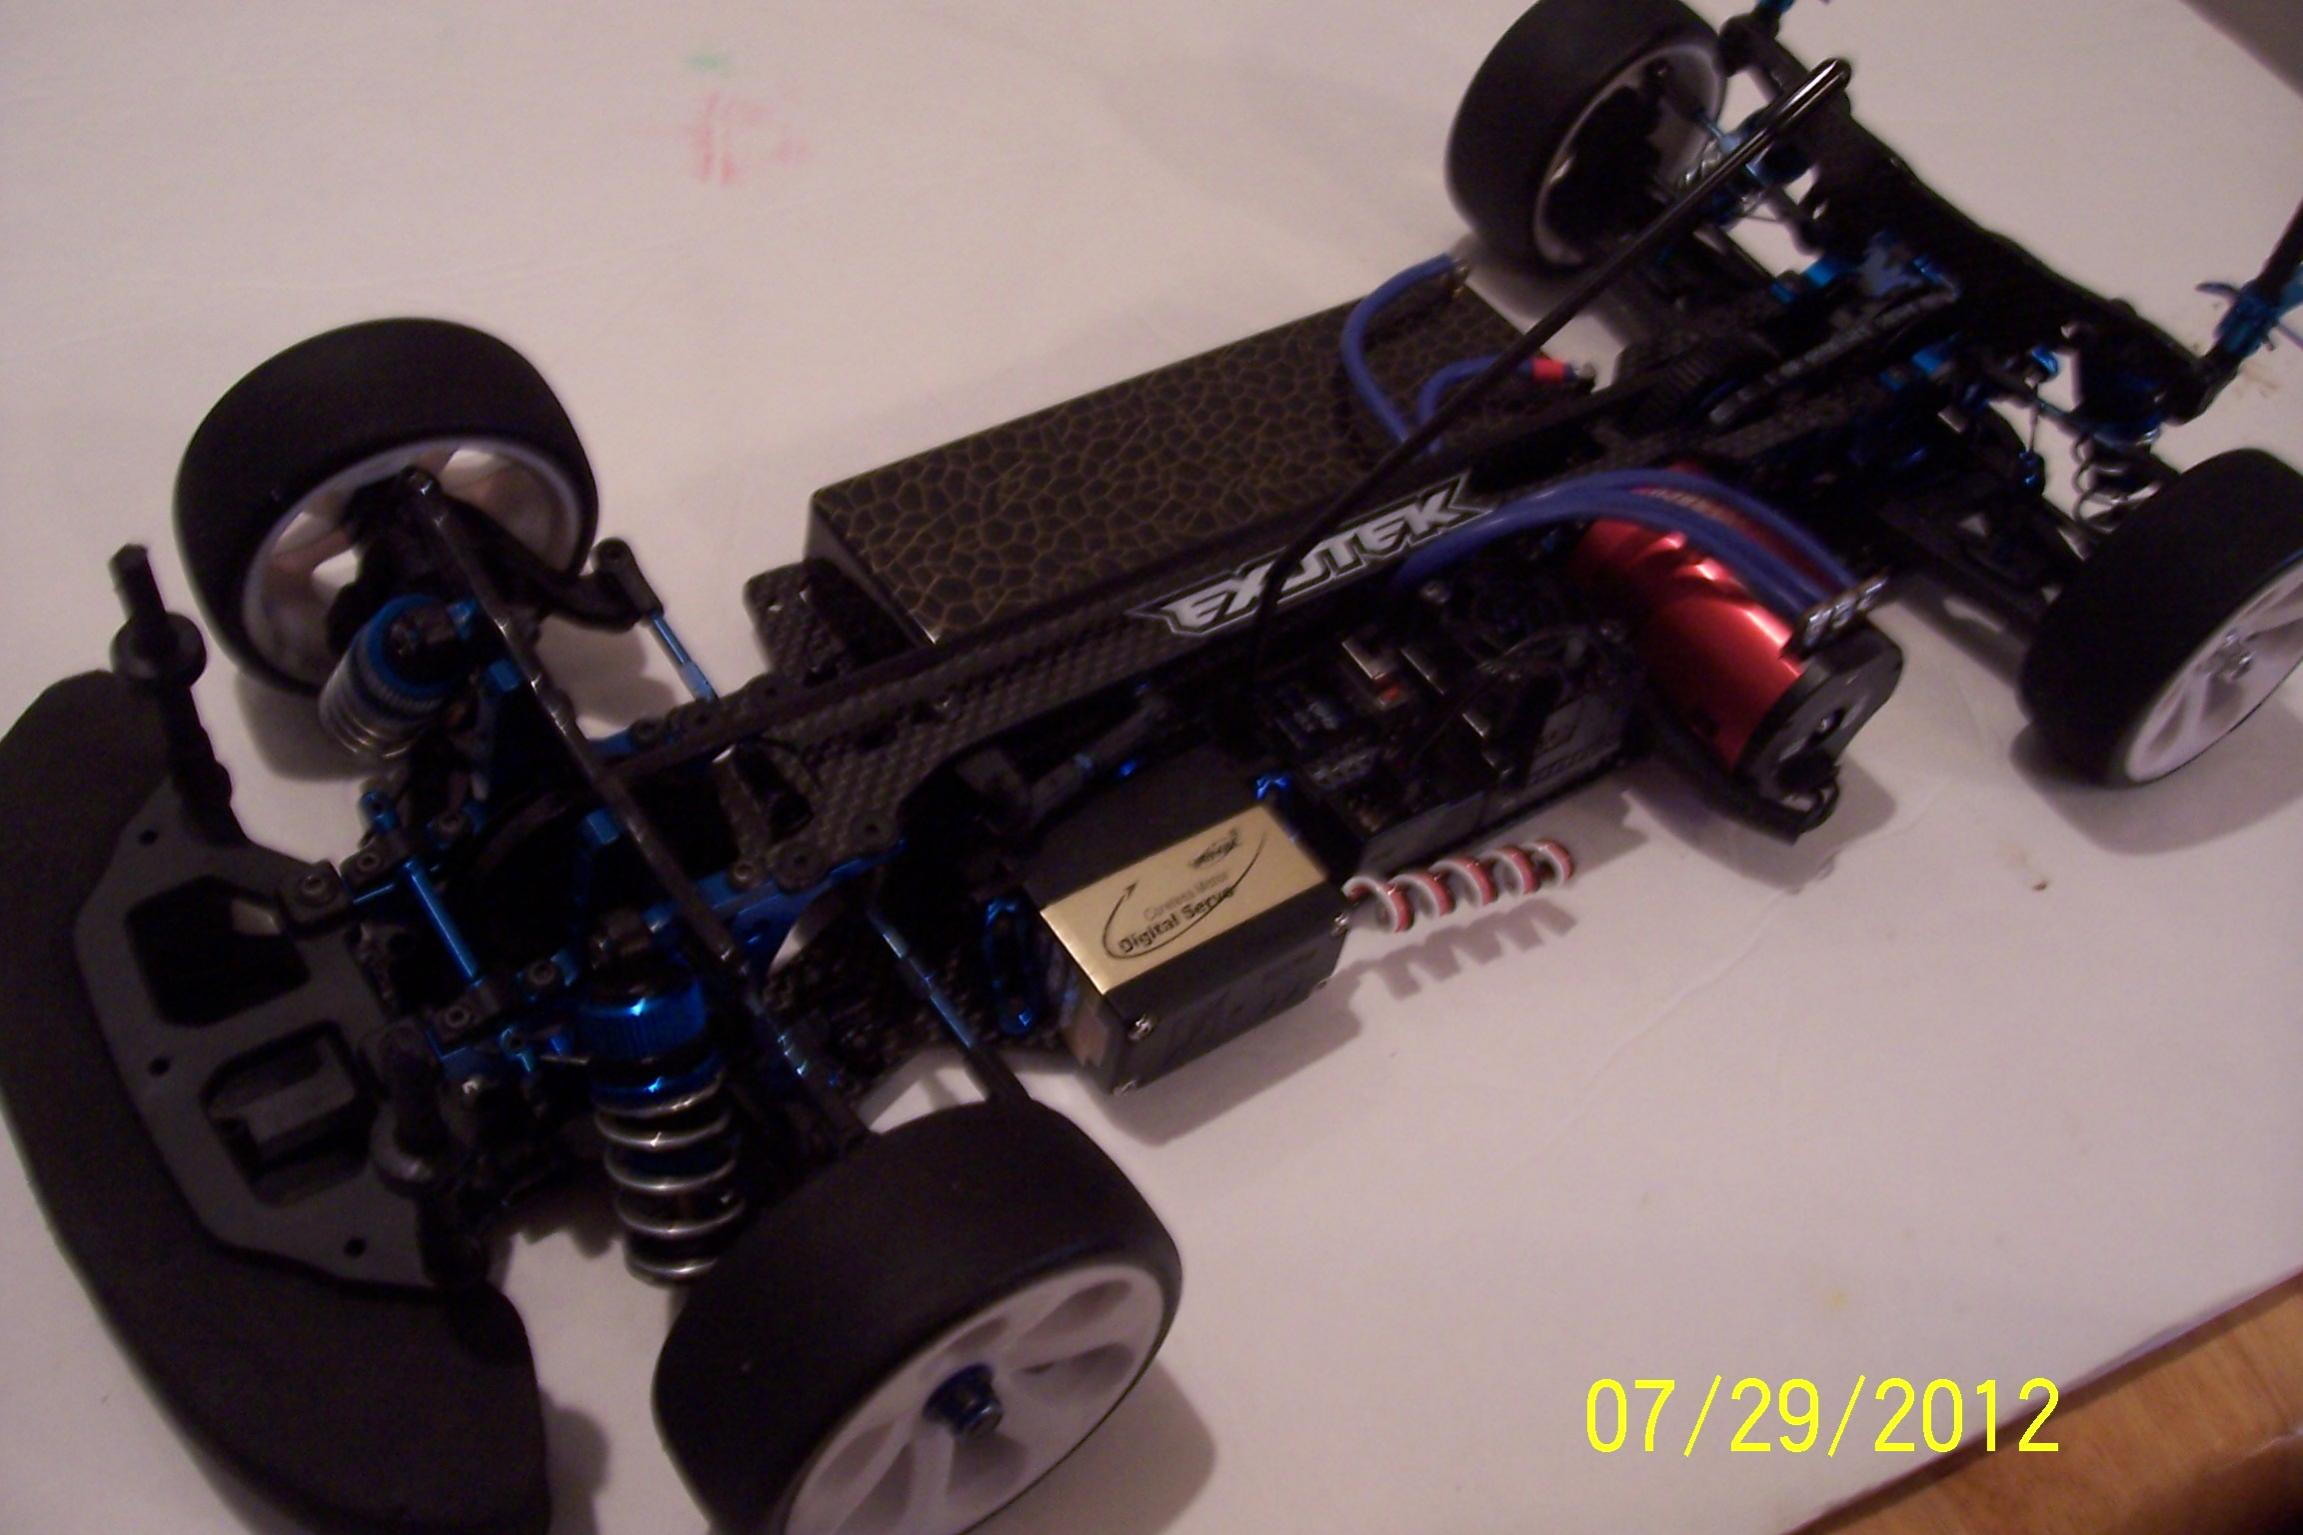 Topeka Onroad Racing Page 531 R C Tech Forums Ideas And Designs